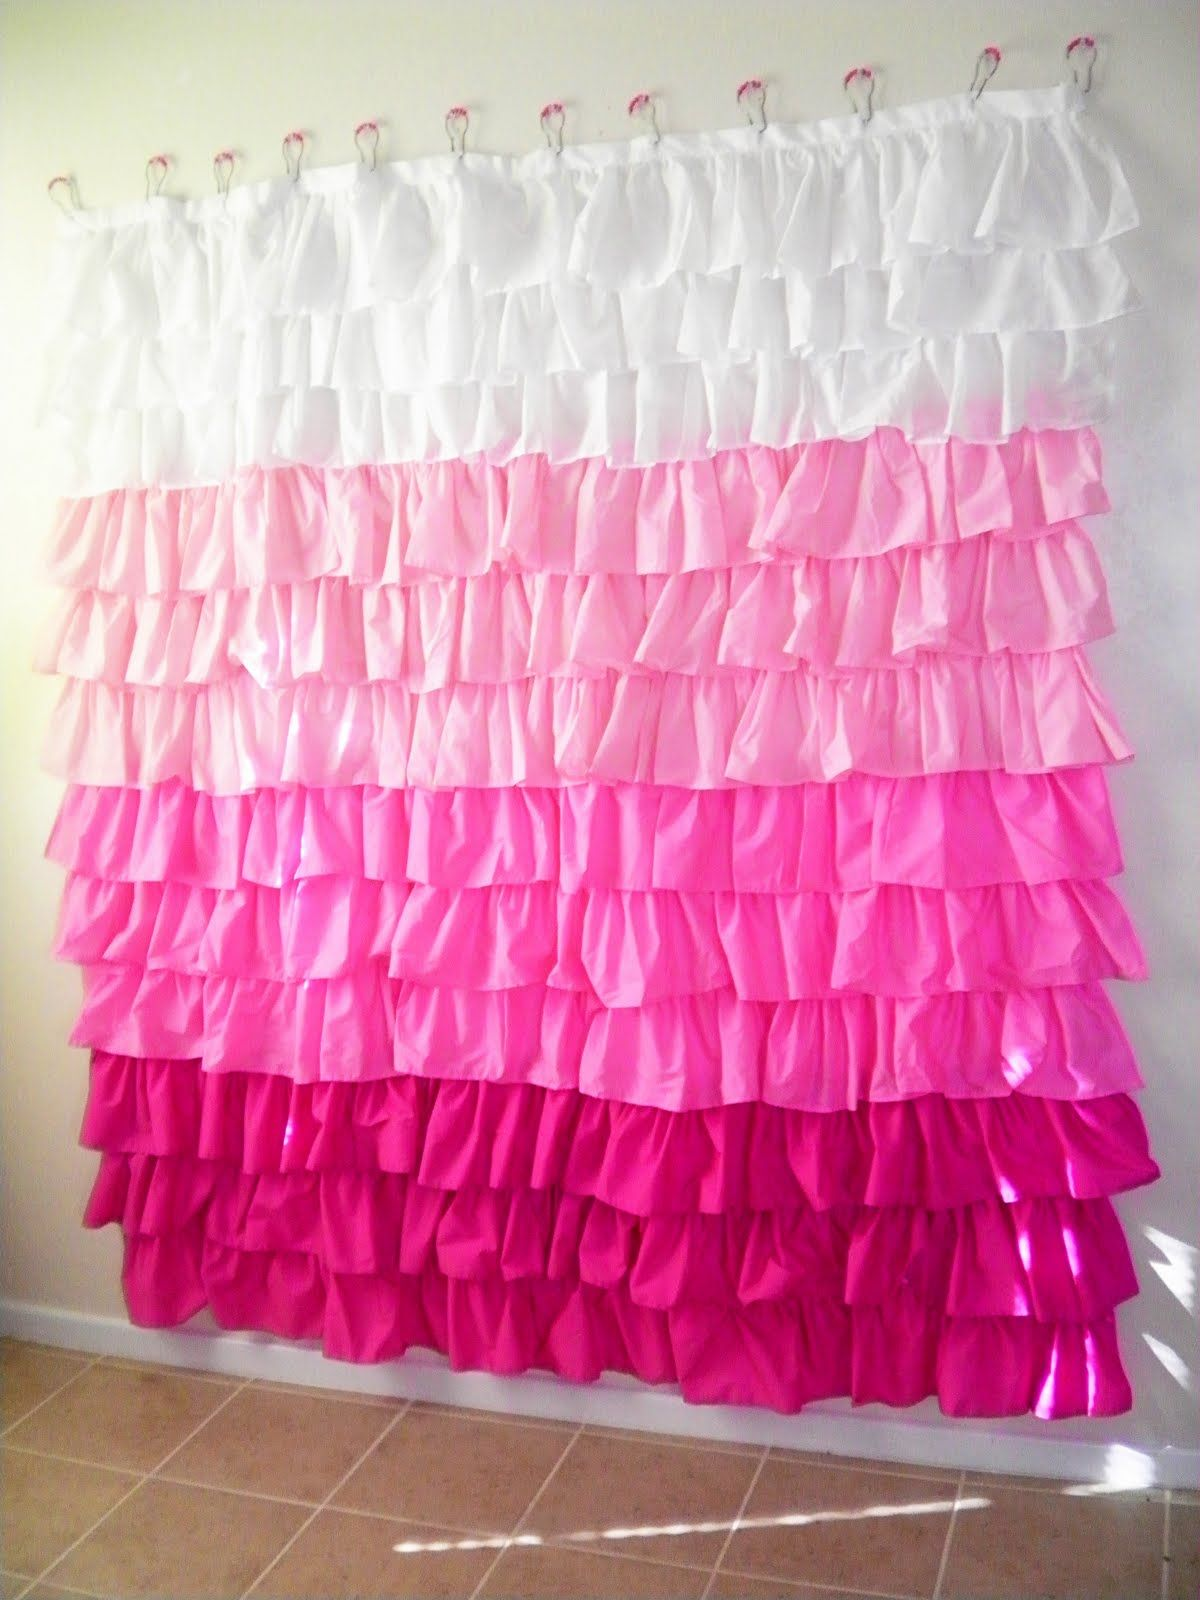 Diy ruffled shower curtain - Another Tutorial On Making Ruffled Shower Curtains